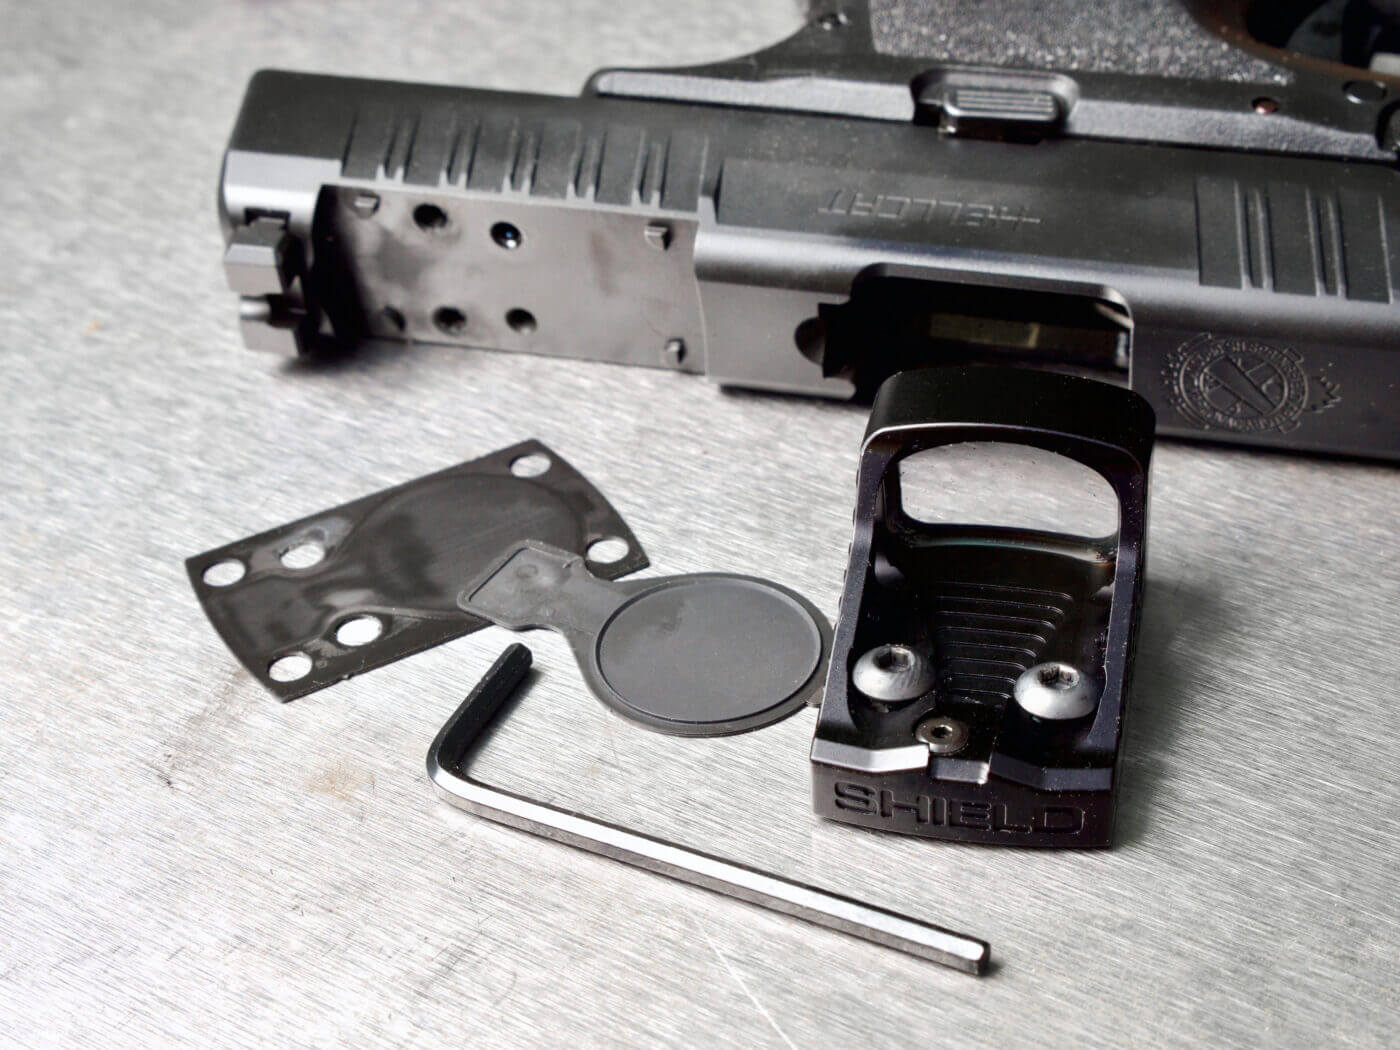 Installing the Shield RMSw on a Hellcat slide